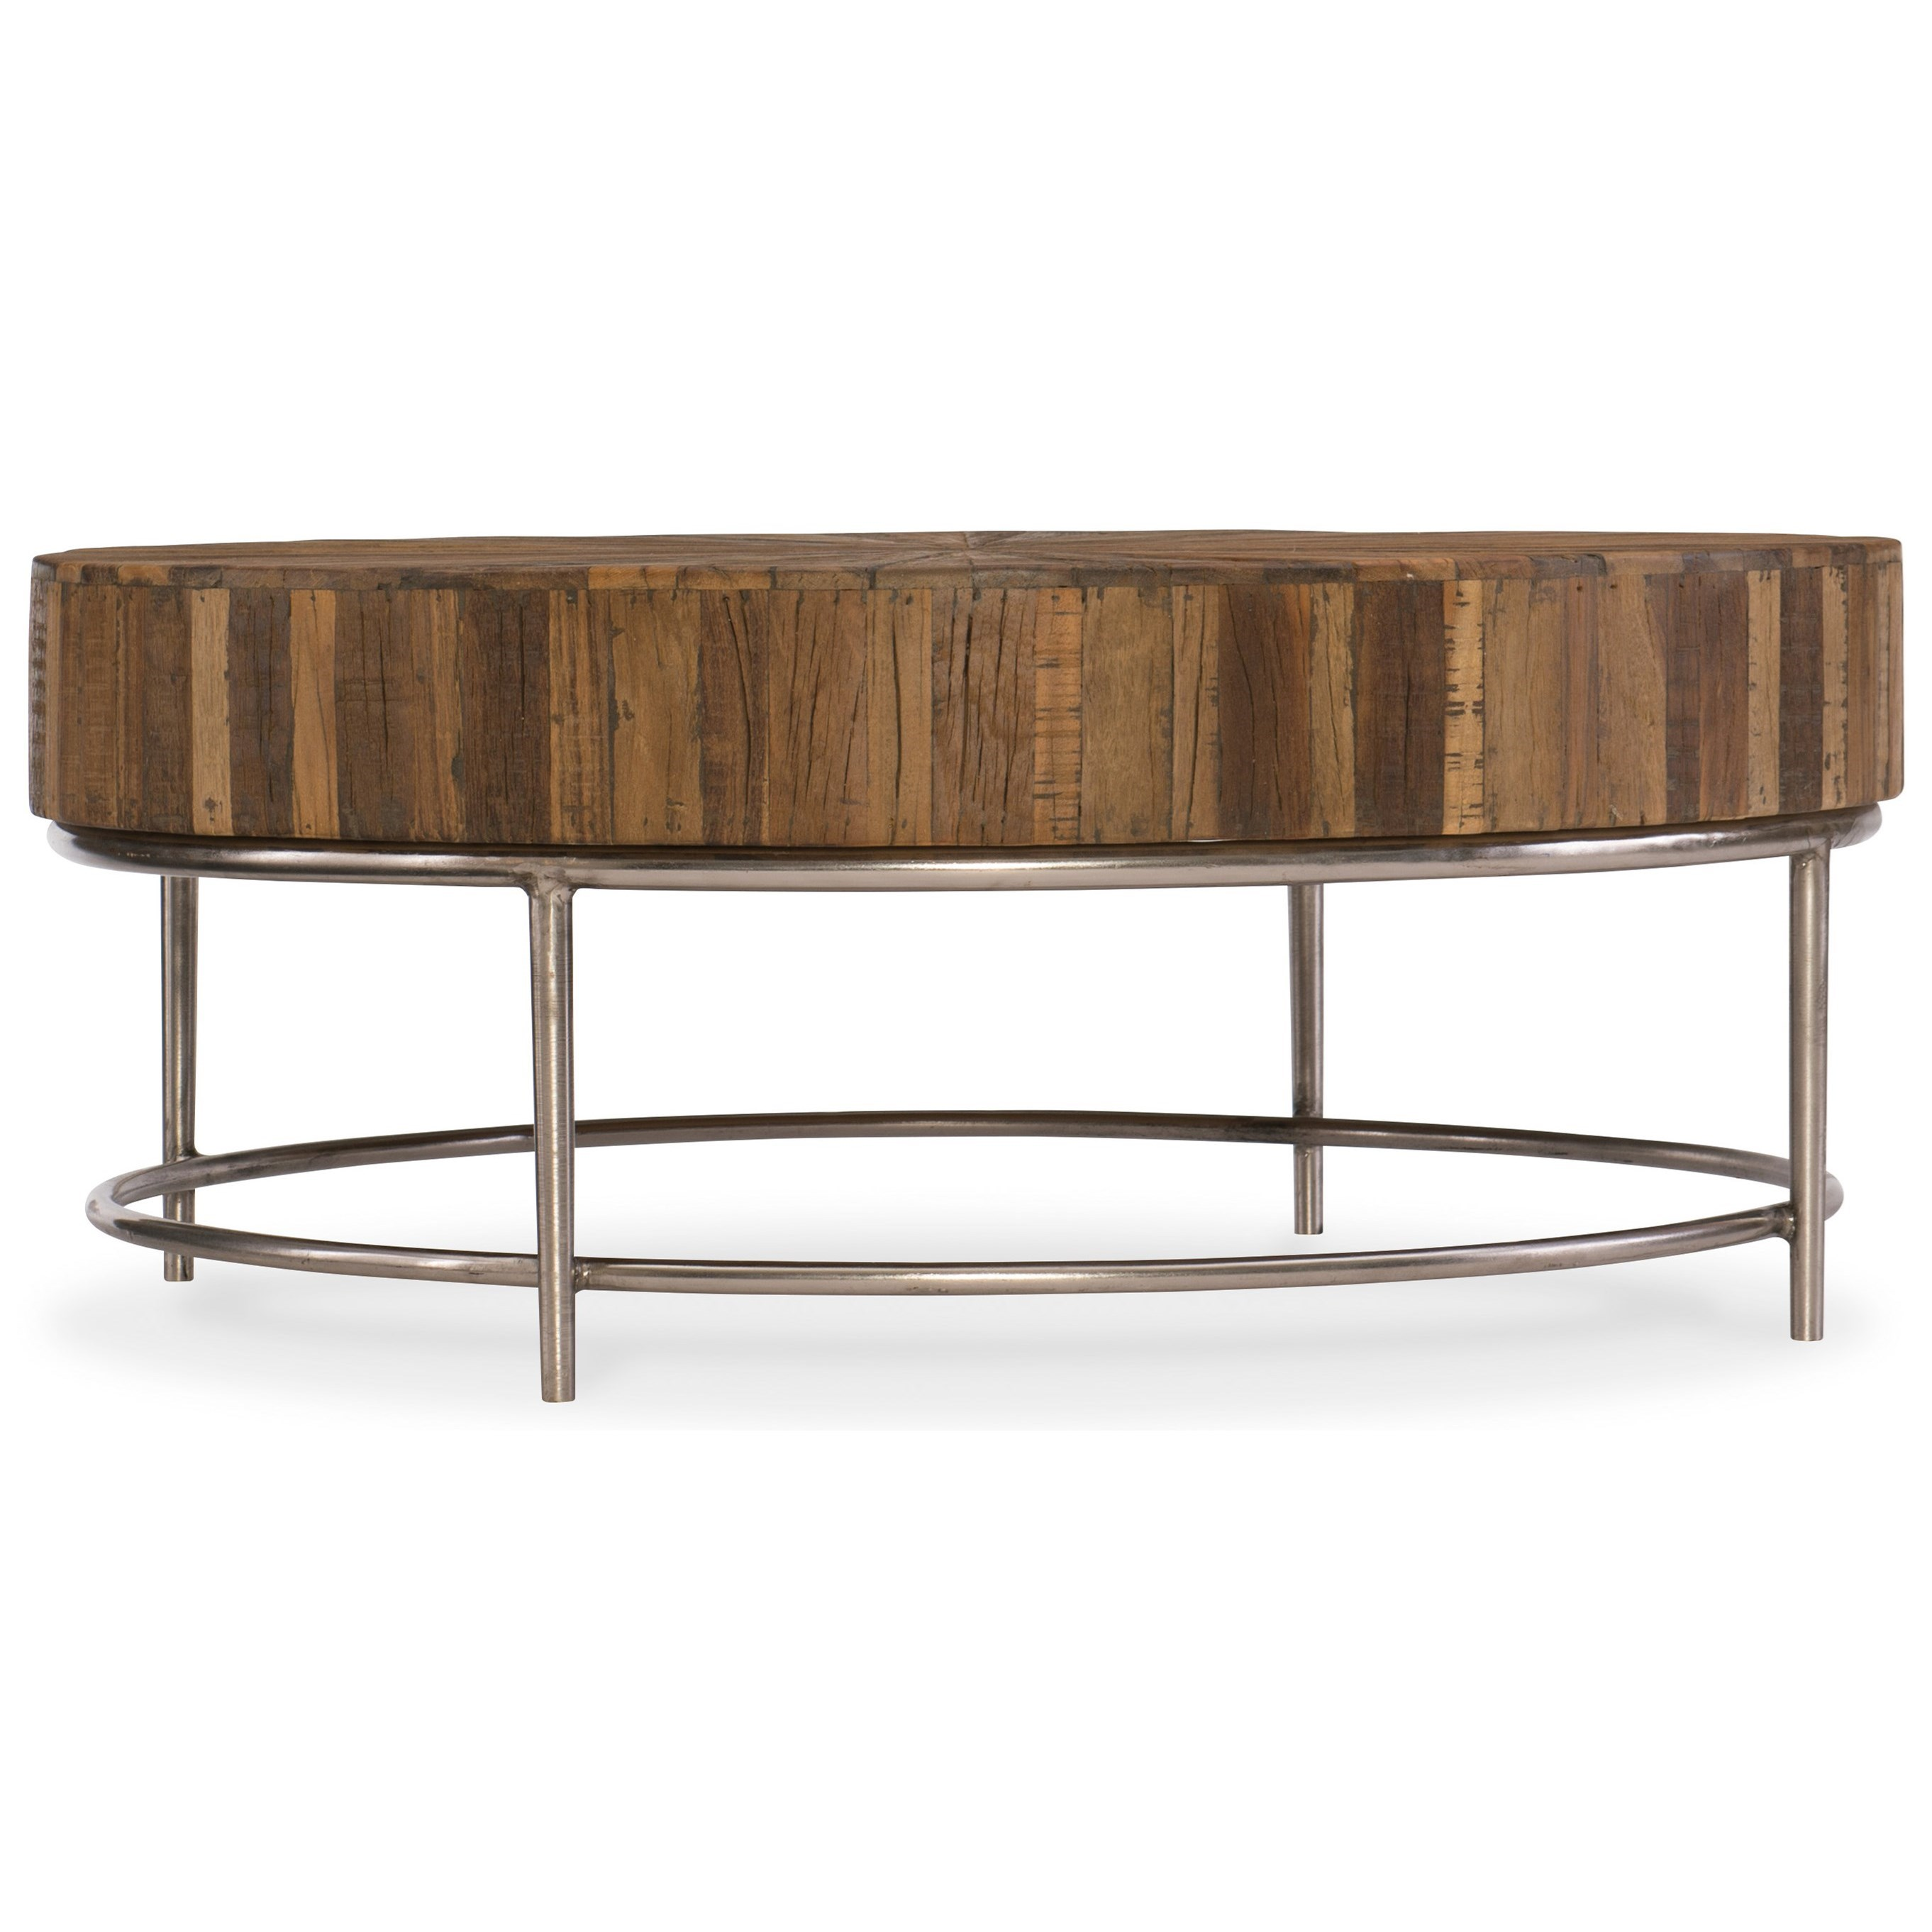 L'Usine Cocktail Table by Hooker Furniture at Stoney Creek Furniture